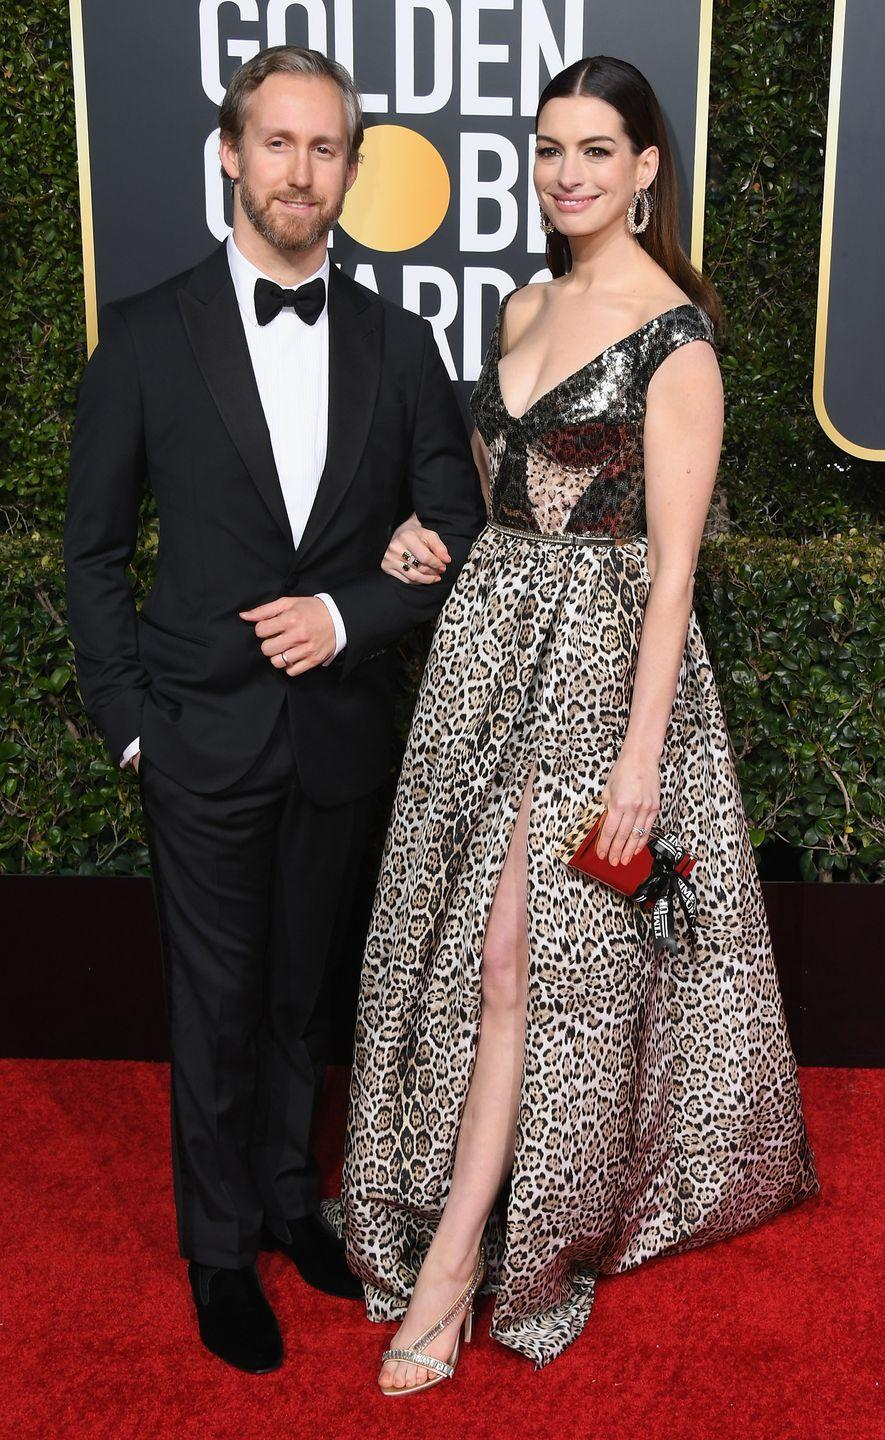 <p>Anne Hathaway and her jewelry designer husband, Adam Shulman, met in 2008 at the Palm Springs Film Festival. The couple got married in a ceremony in Big Sur, California in 2012. They have two children together.</p>